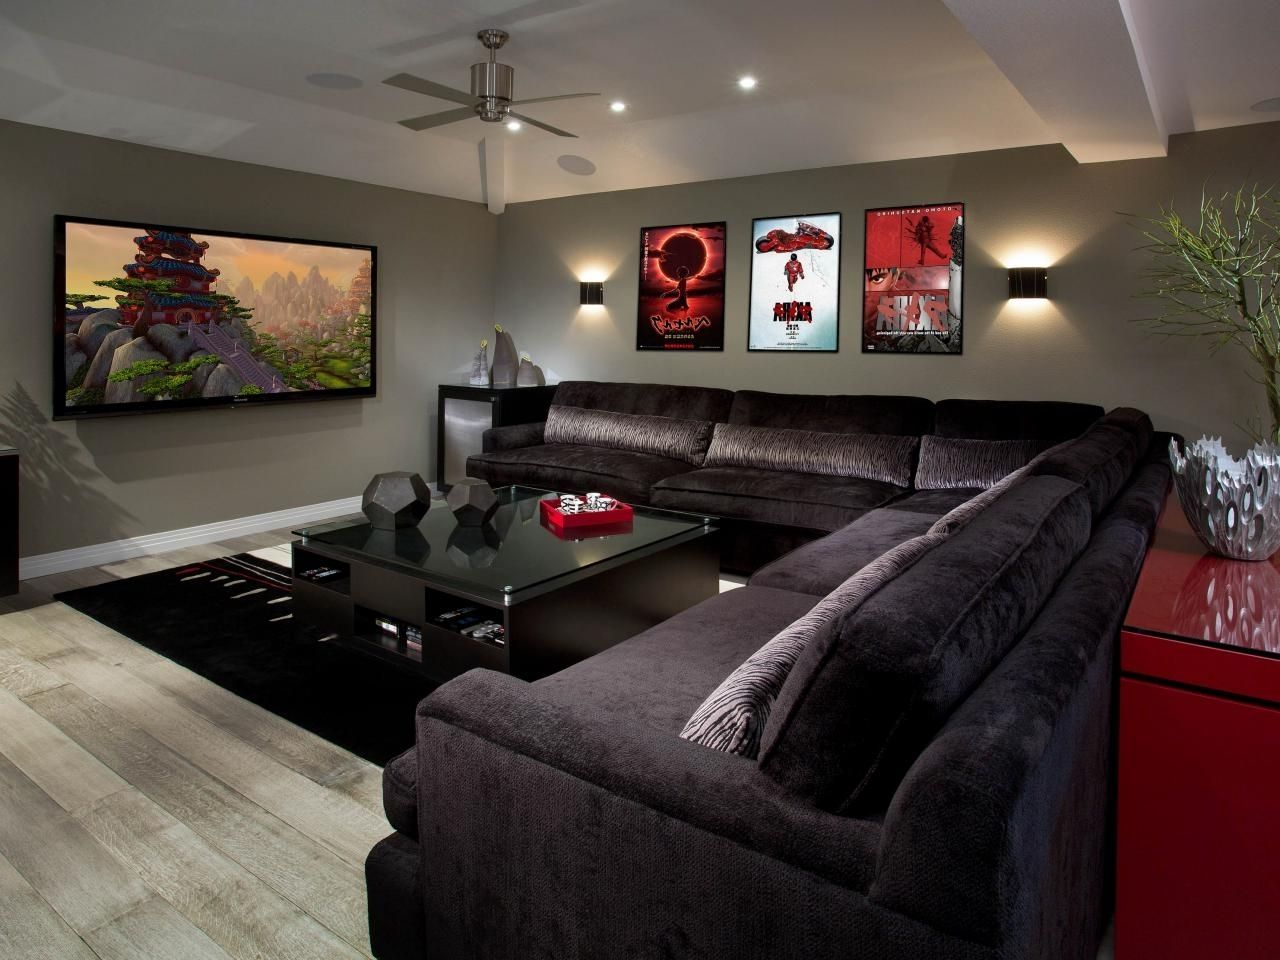 Browse 25 Ideas Of Media Room Sectional That Could Be Best For People Have Planned To Decorate Their Sofa